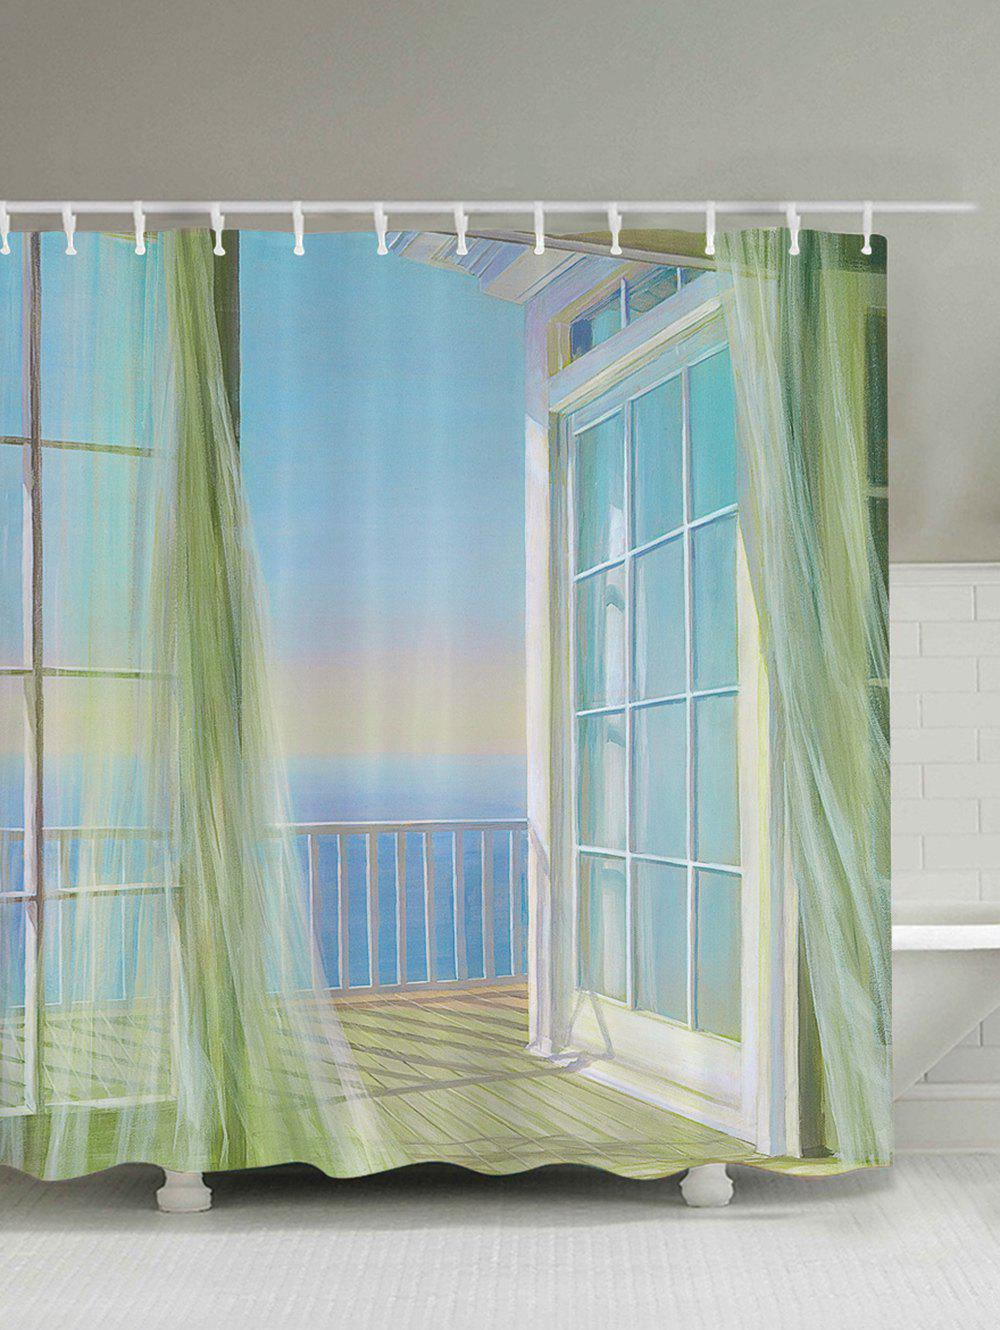 Bath Decor Balcony Seascape Print Shower Curtain 12 pcs resin bubble bath print shower curtain hooks